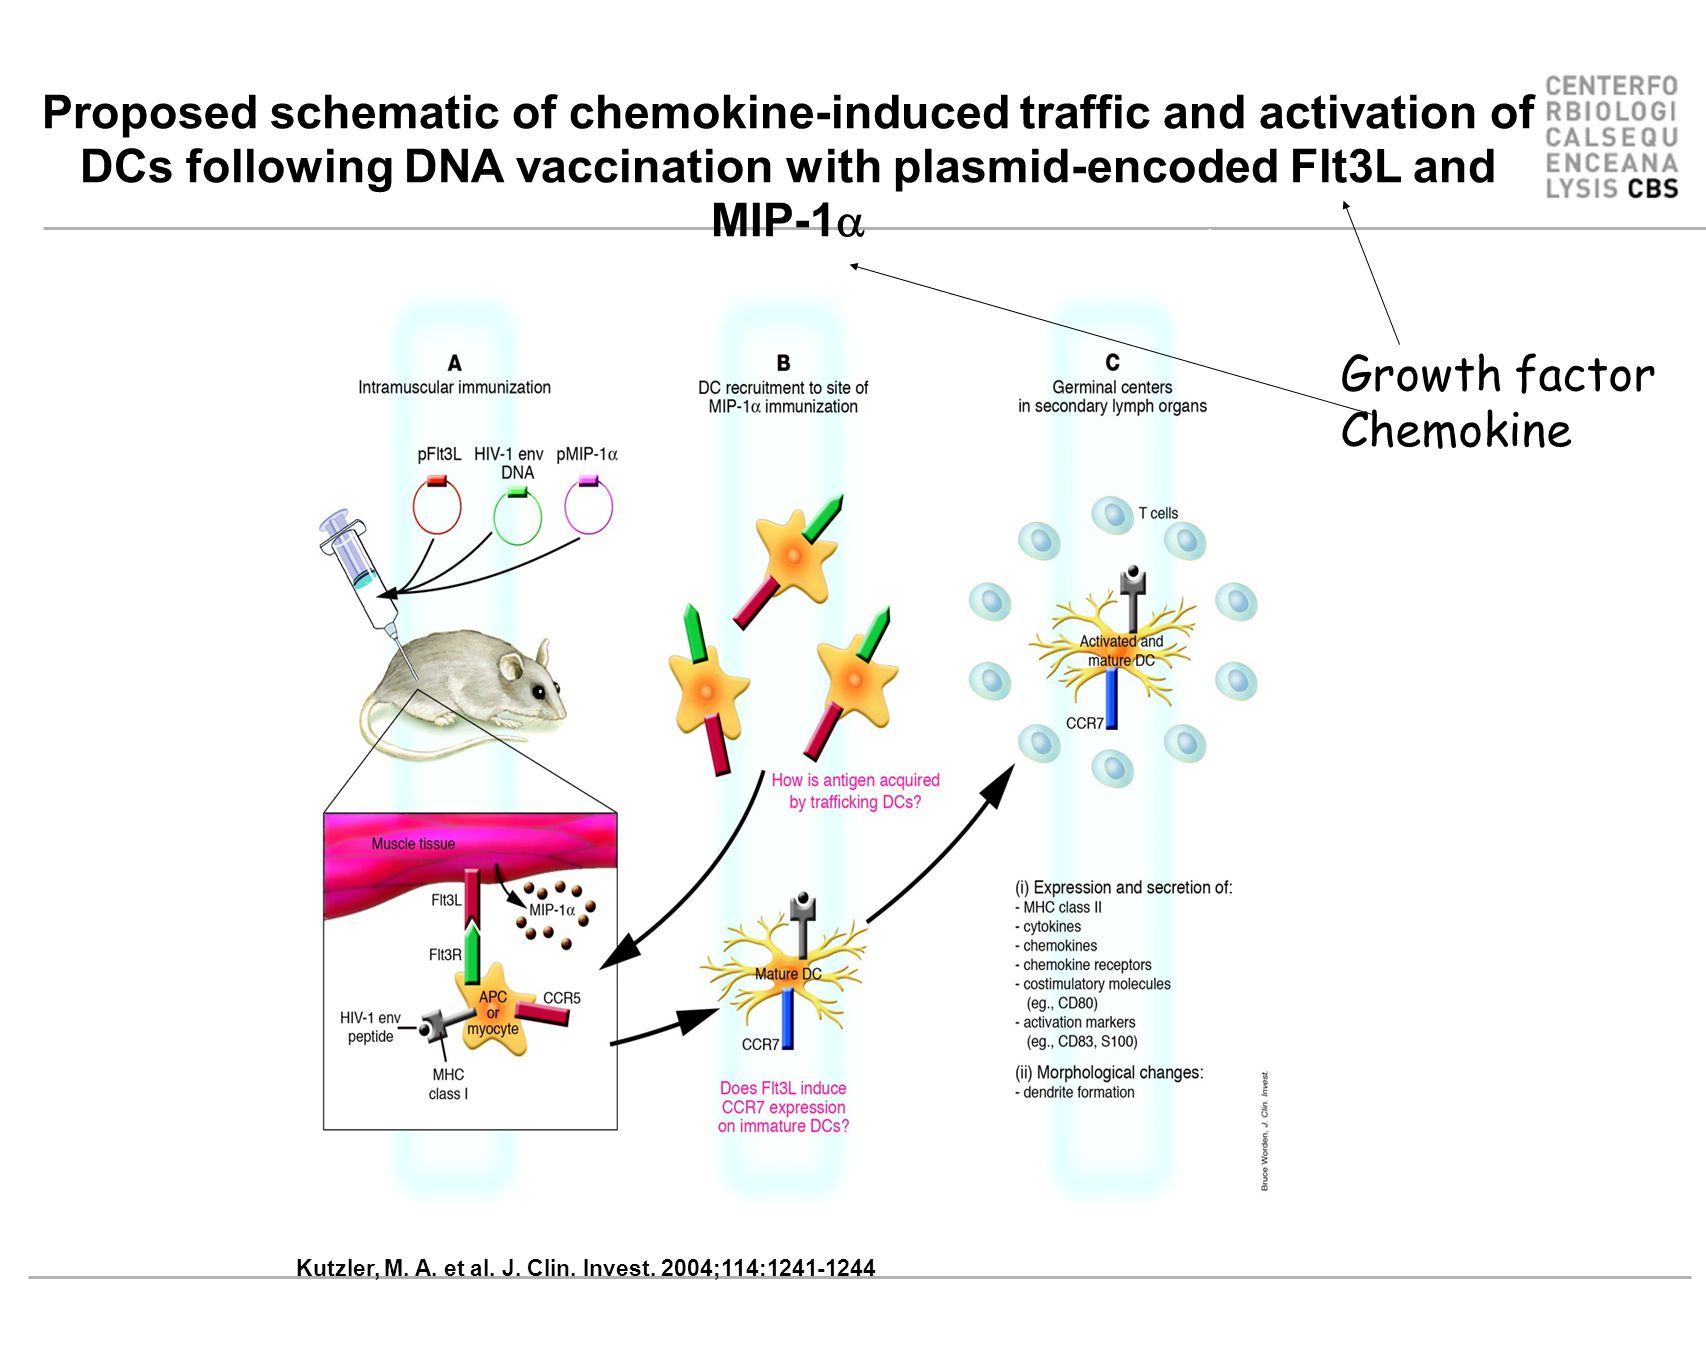 Proposed schematic of chemokine-induced traffic and activation of DCs following DNA vaccination with plasmid-encoded Flt3L and MIP-1a